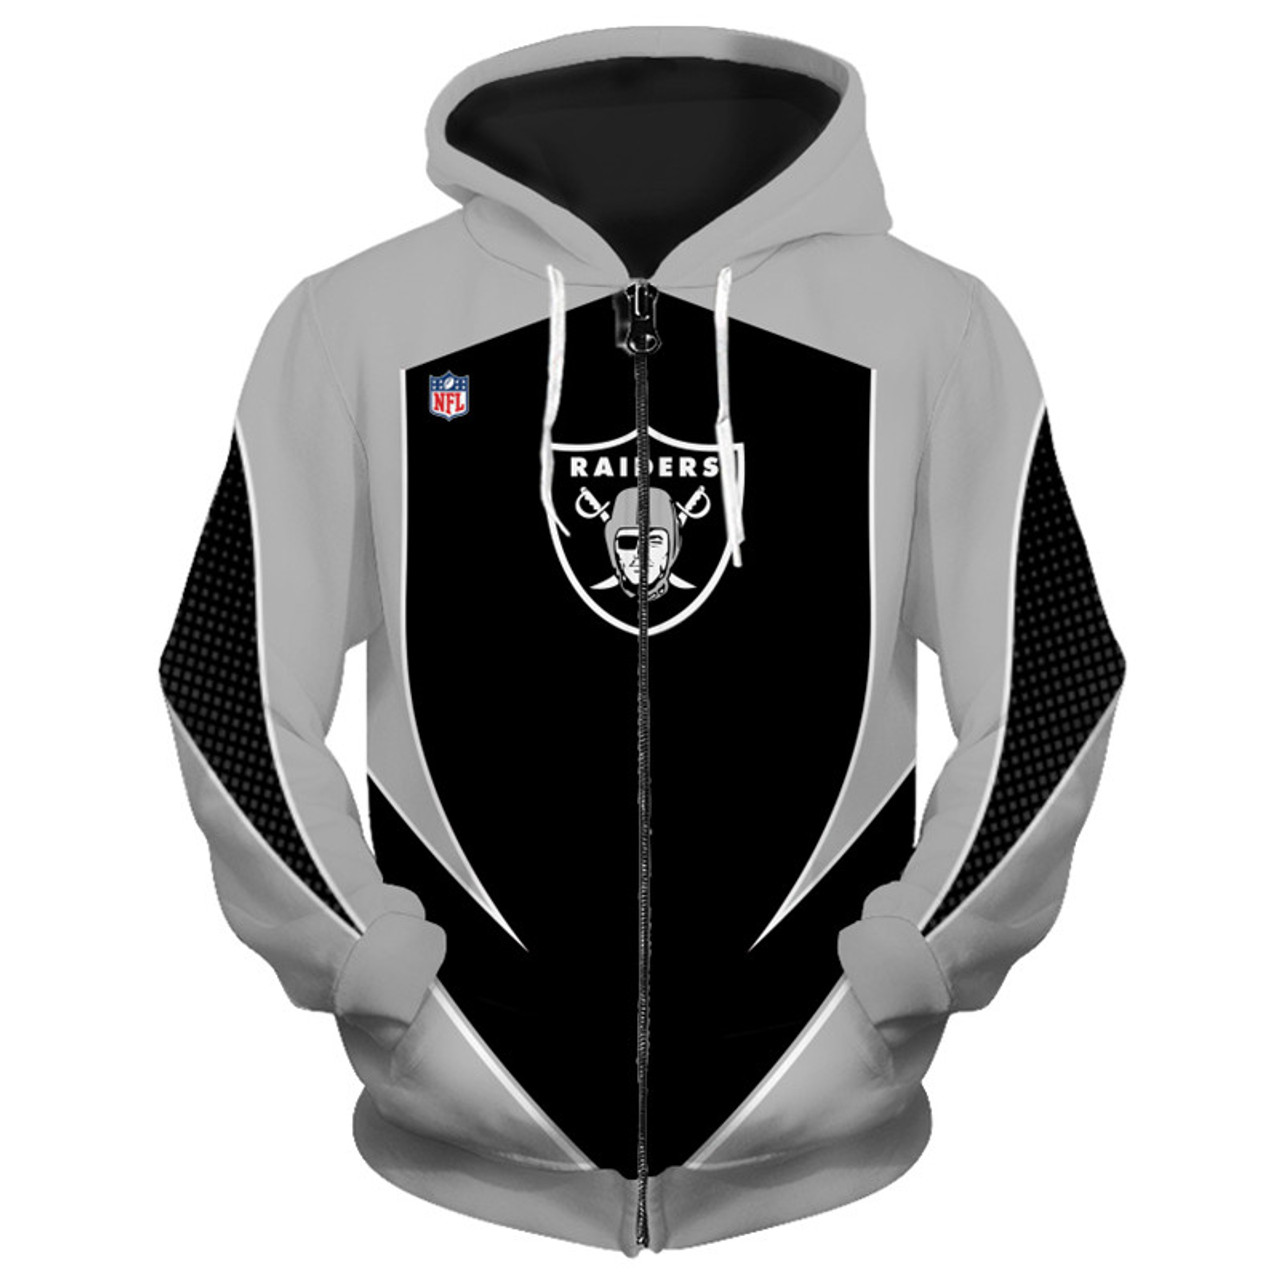 12cf959b08b **(OFFICIALLY-LICENSED-N.F.L.OAKLAND-RAIDERS-TEAM-ZIPPERED-HOODIES/NEW-CUSTOM-3D-GRAPHIC-PRINTED-DOUBLE-SIDED-DESIGNED/ALL-OVER-OFFICIAL-RAIDERS-LOGOS  ...